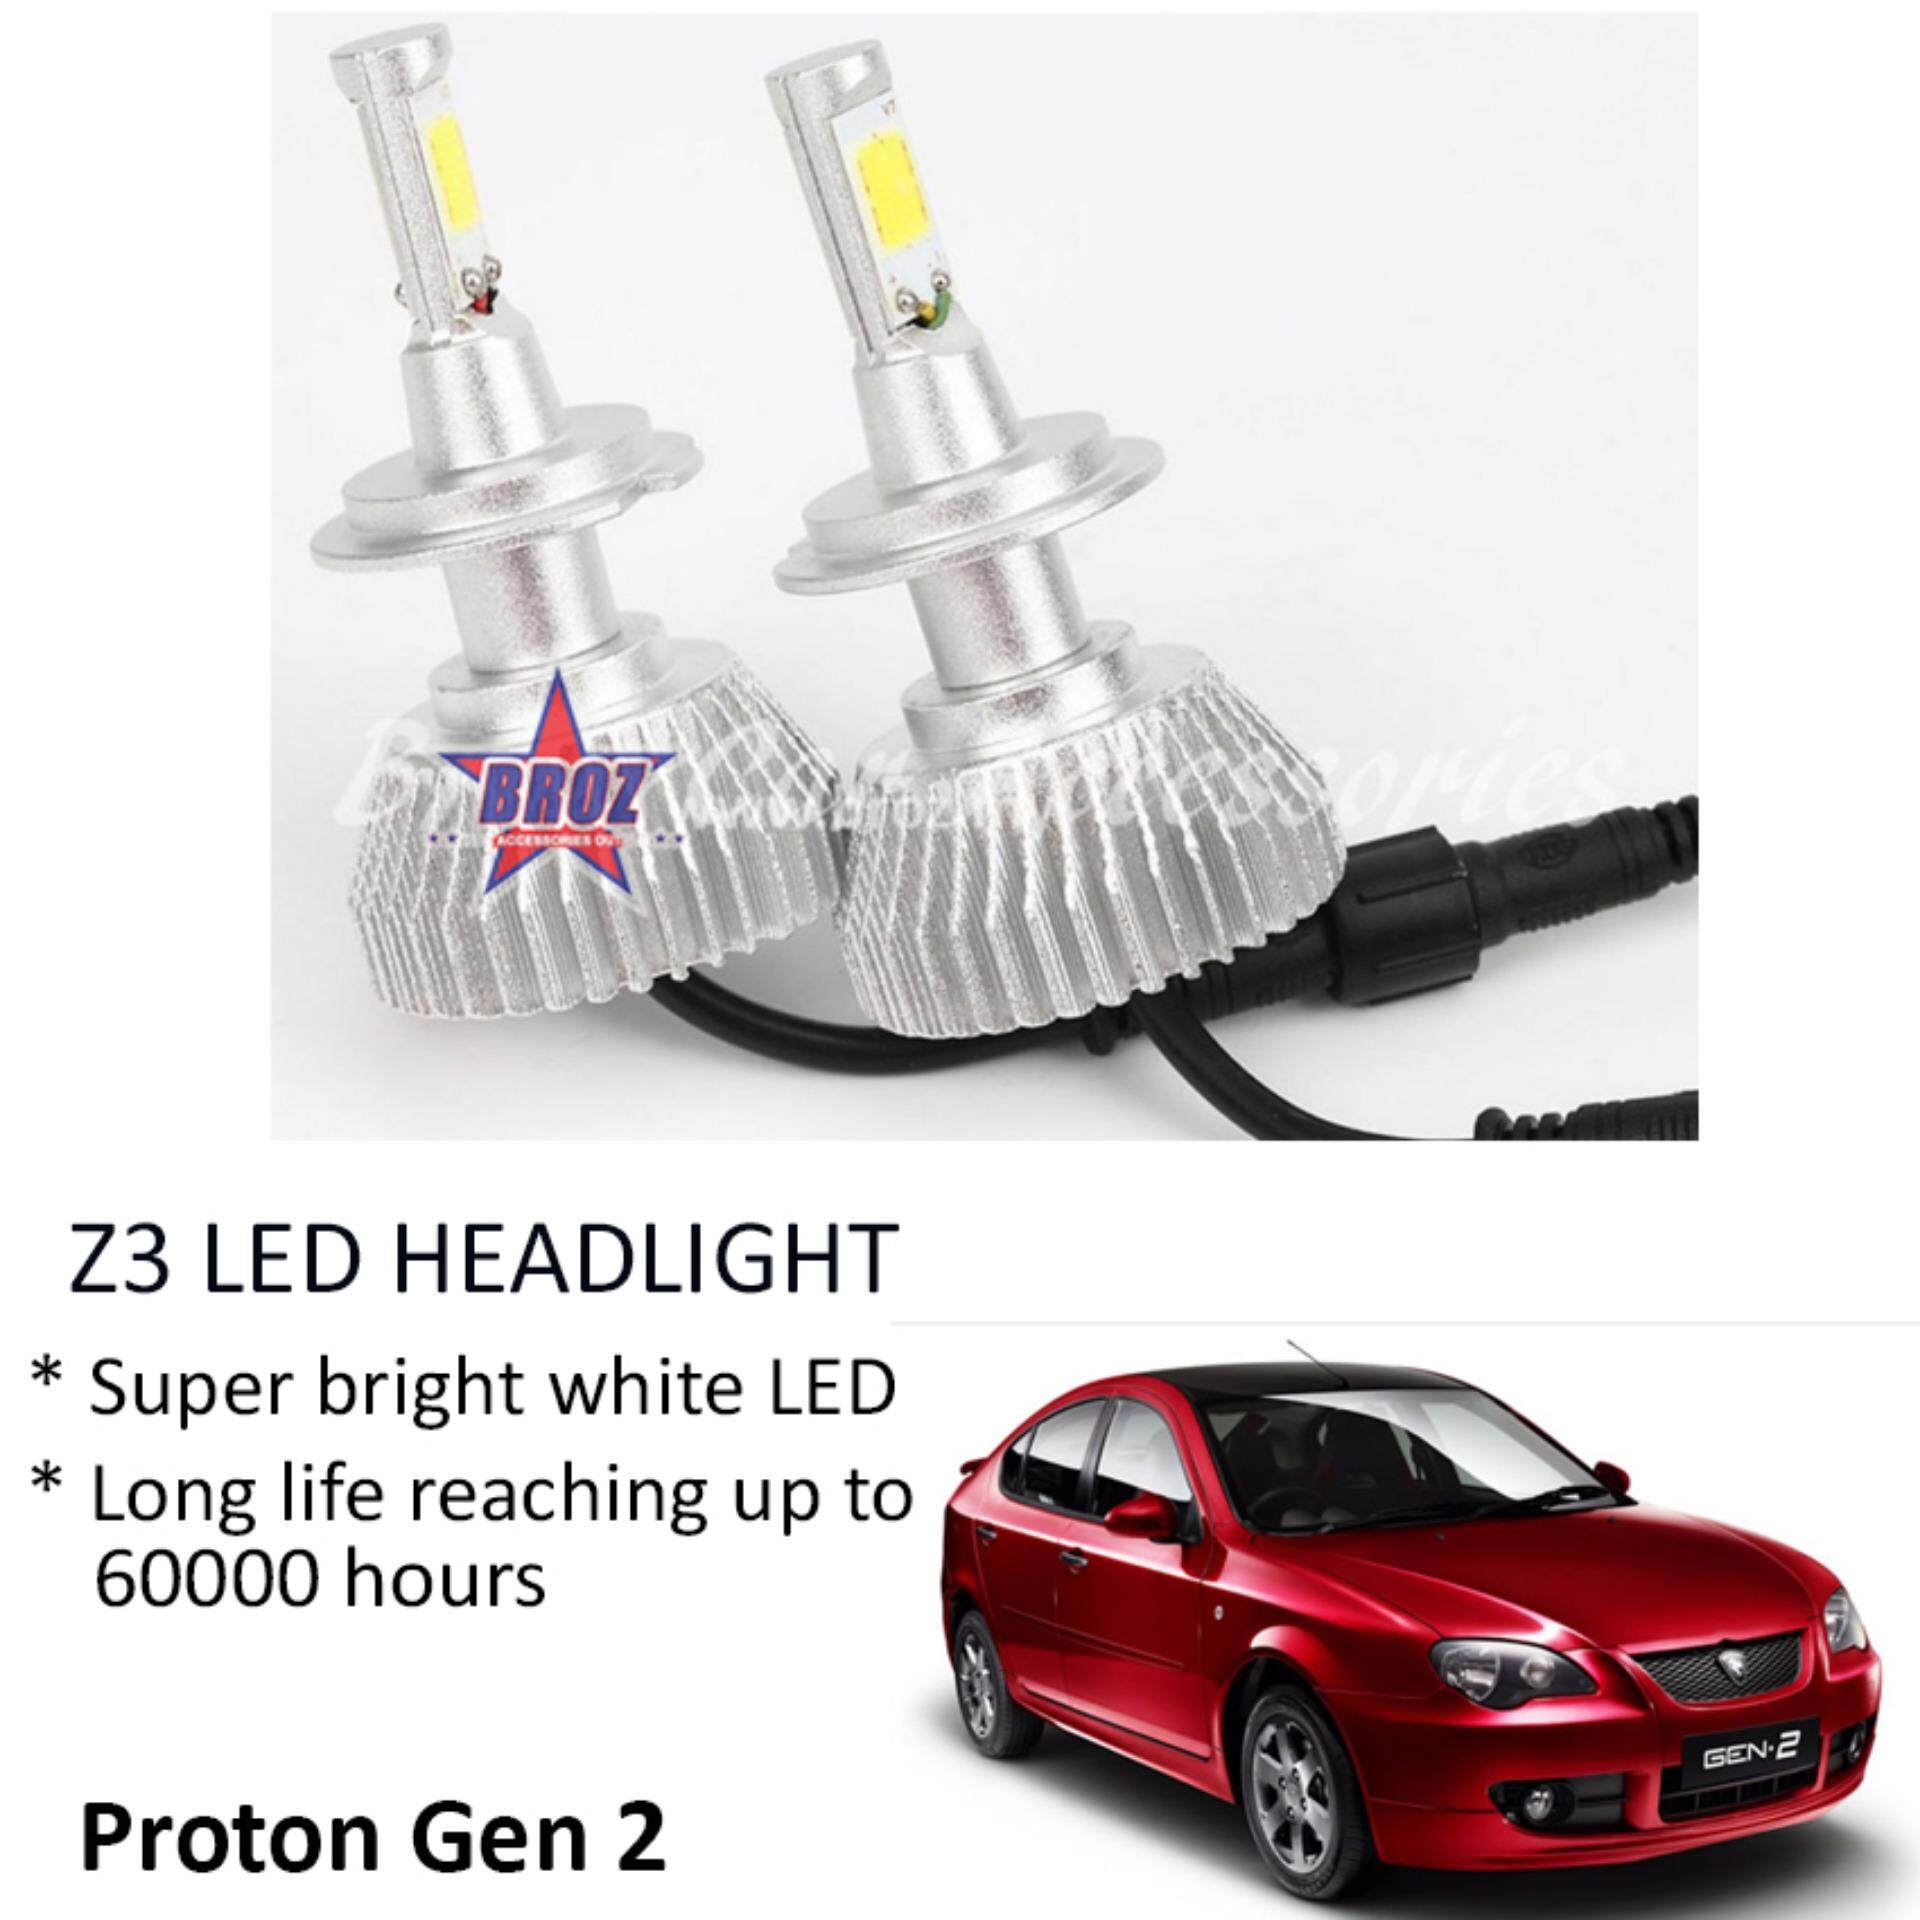 Proton Gen 2 (Head Lamp) Z3 LED Light Car Headlight Auto Head light Lamp 6000k White Light